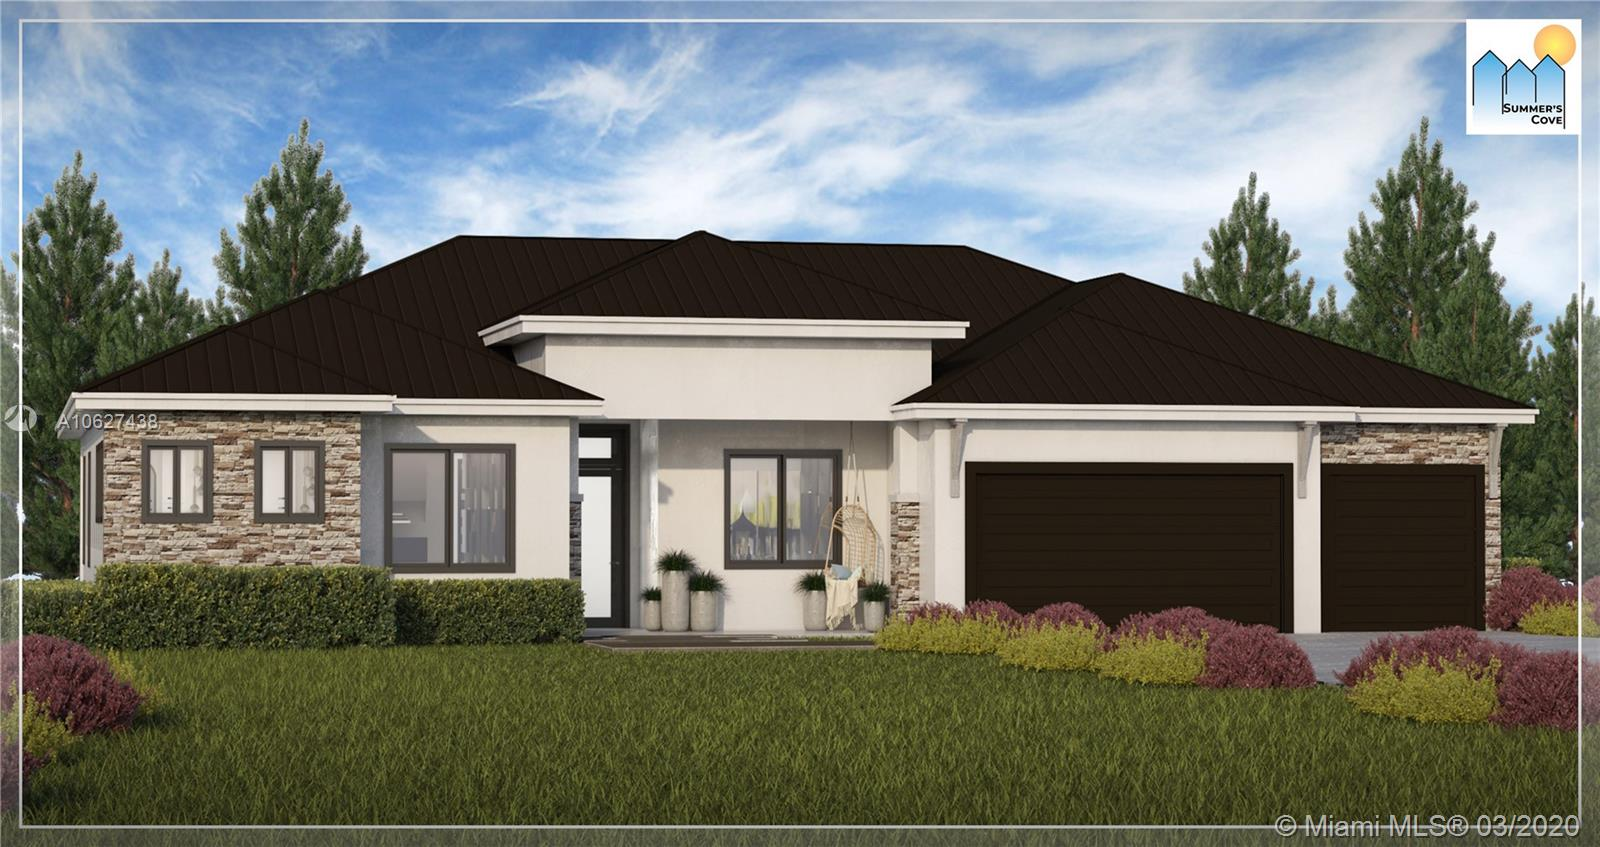 BRAND NEW PRE-CONSTRUCTION-3 HOMES. EACH WILL BE LOCATED ON A 1 acre and 2 1/2 ACRE LOTS. ALL HOMES WILL INCLUDE IMPACT GLASS WINDOWS, STAINLESS STEEL APPLIANCES, QUARTZ COUNTERS IN THE KITCHEN. METAL ROOFS, PAVERS ON DRIVEWAY & WALKWAY & MUCH MORE!  RESERVE NOW AND YOU CAN PICK YOUR OWN FINISHES. CONSTRUCTION WILL TAKE APPROX 5 MONTHS ONCE STARTED. BUILDER OFFERING UP TO 3% CONTRIBUTION TOWARDS CLOSING COSTS IF BUYER USES BUILDER'S PREFERRED LENDER AND PREFERRED TITLE COMPANY.